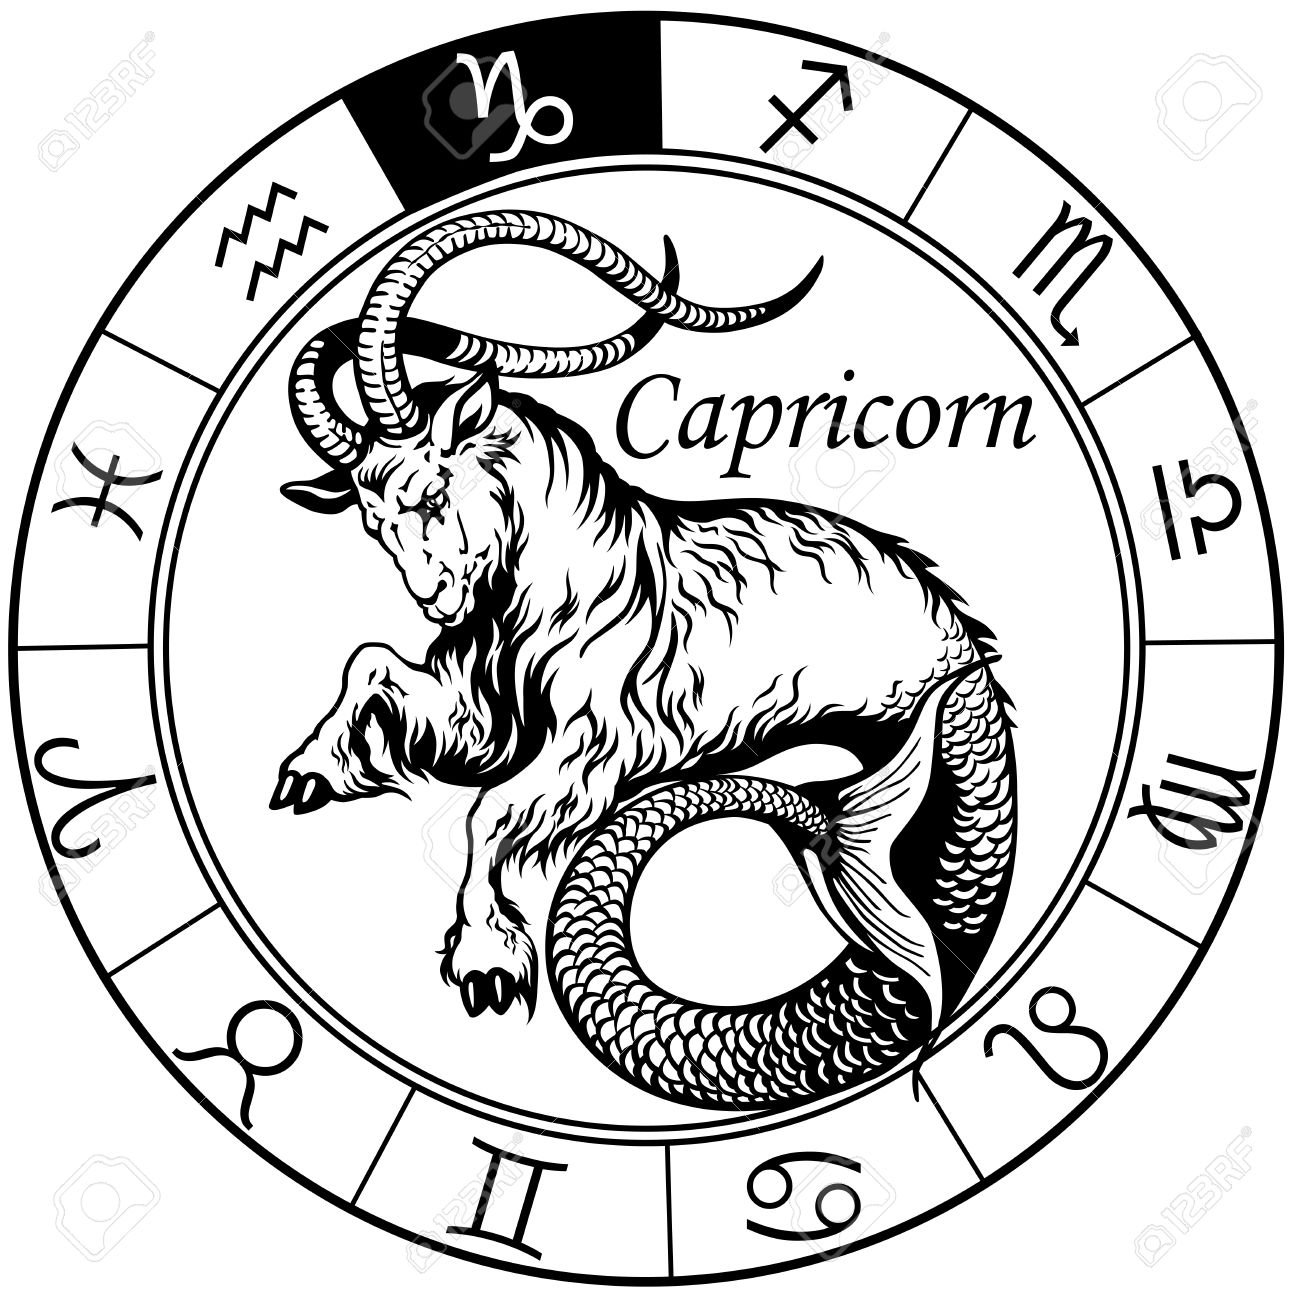 1300x1300 Capricorn Stock Photos. Royalty Free Business Images